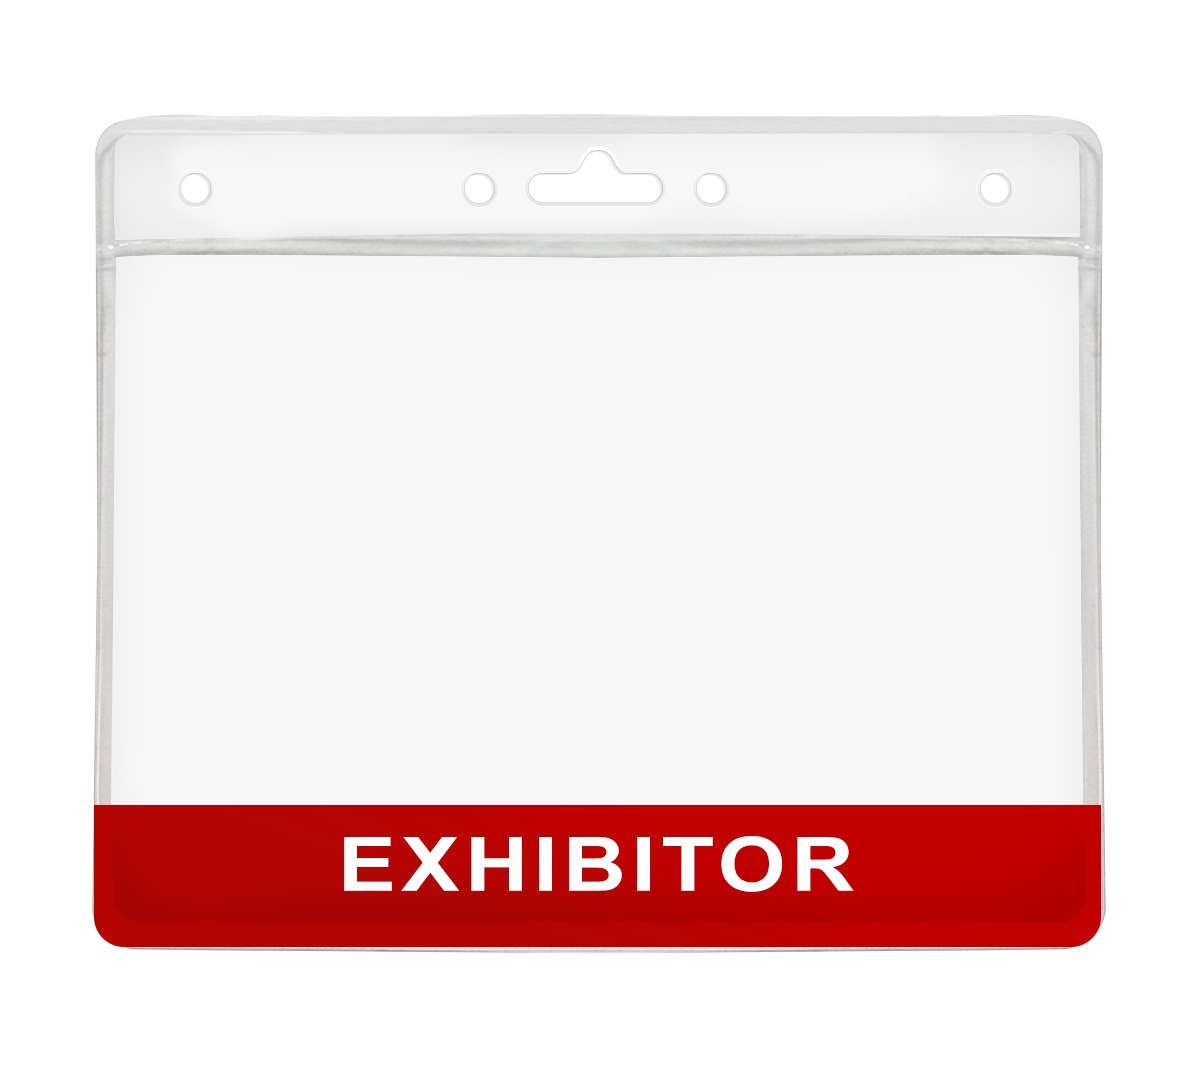 Exhibitor - Red